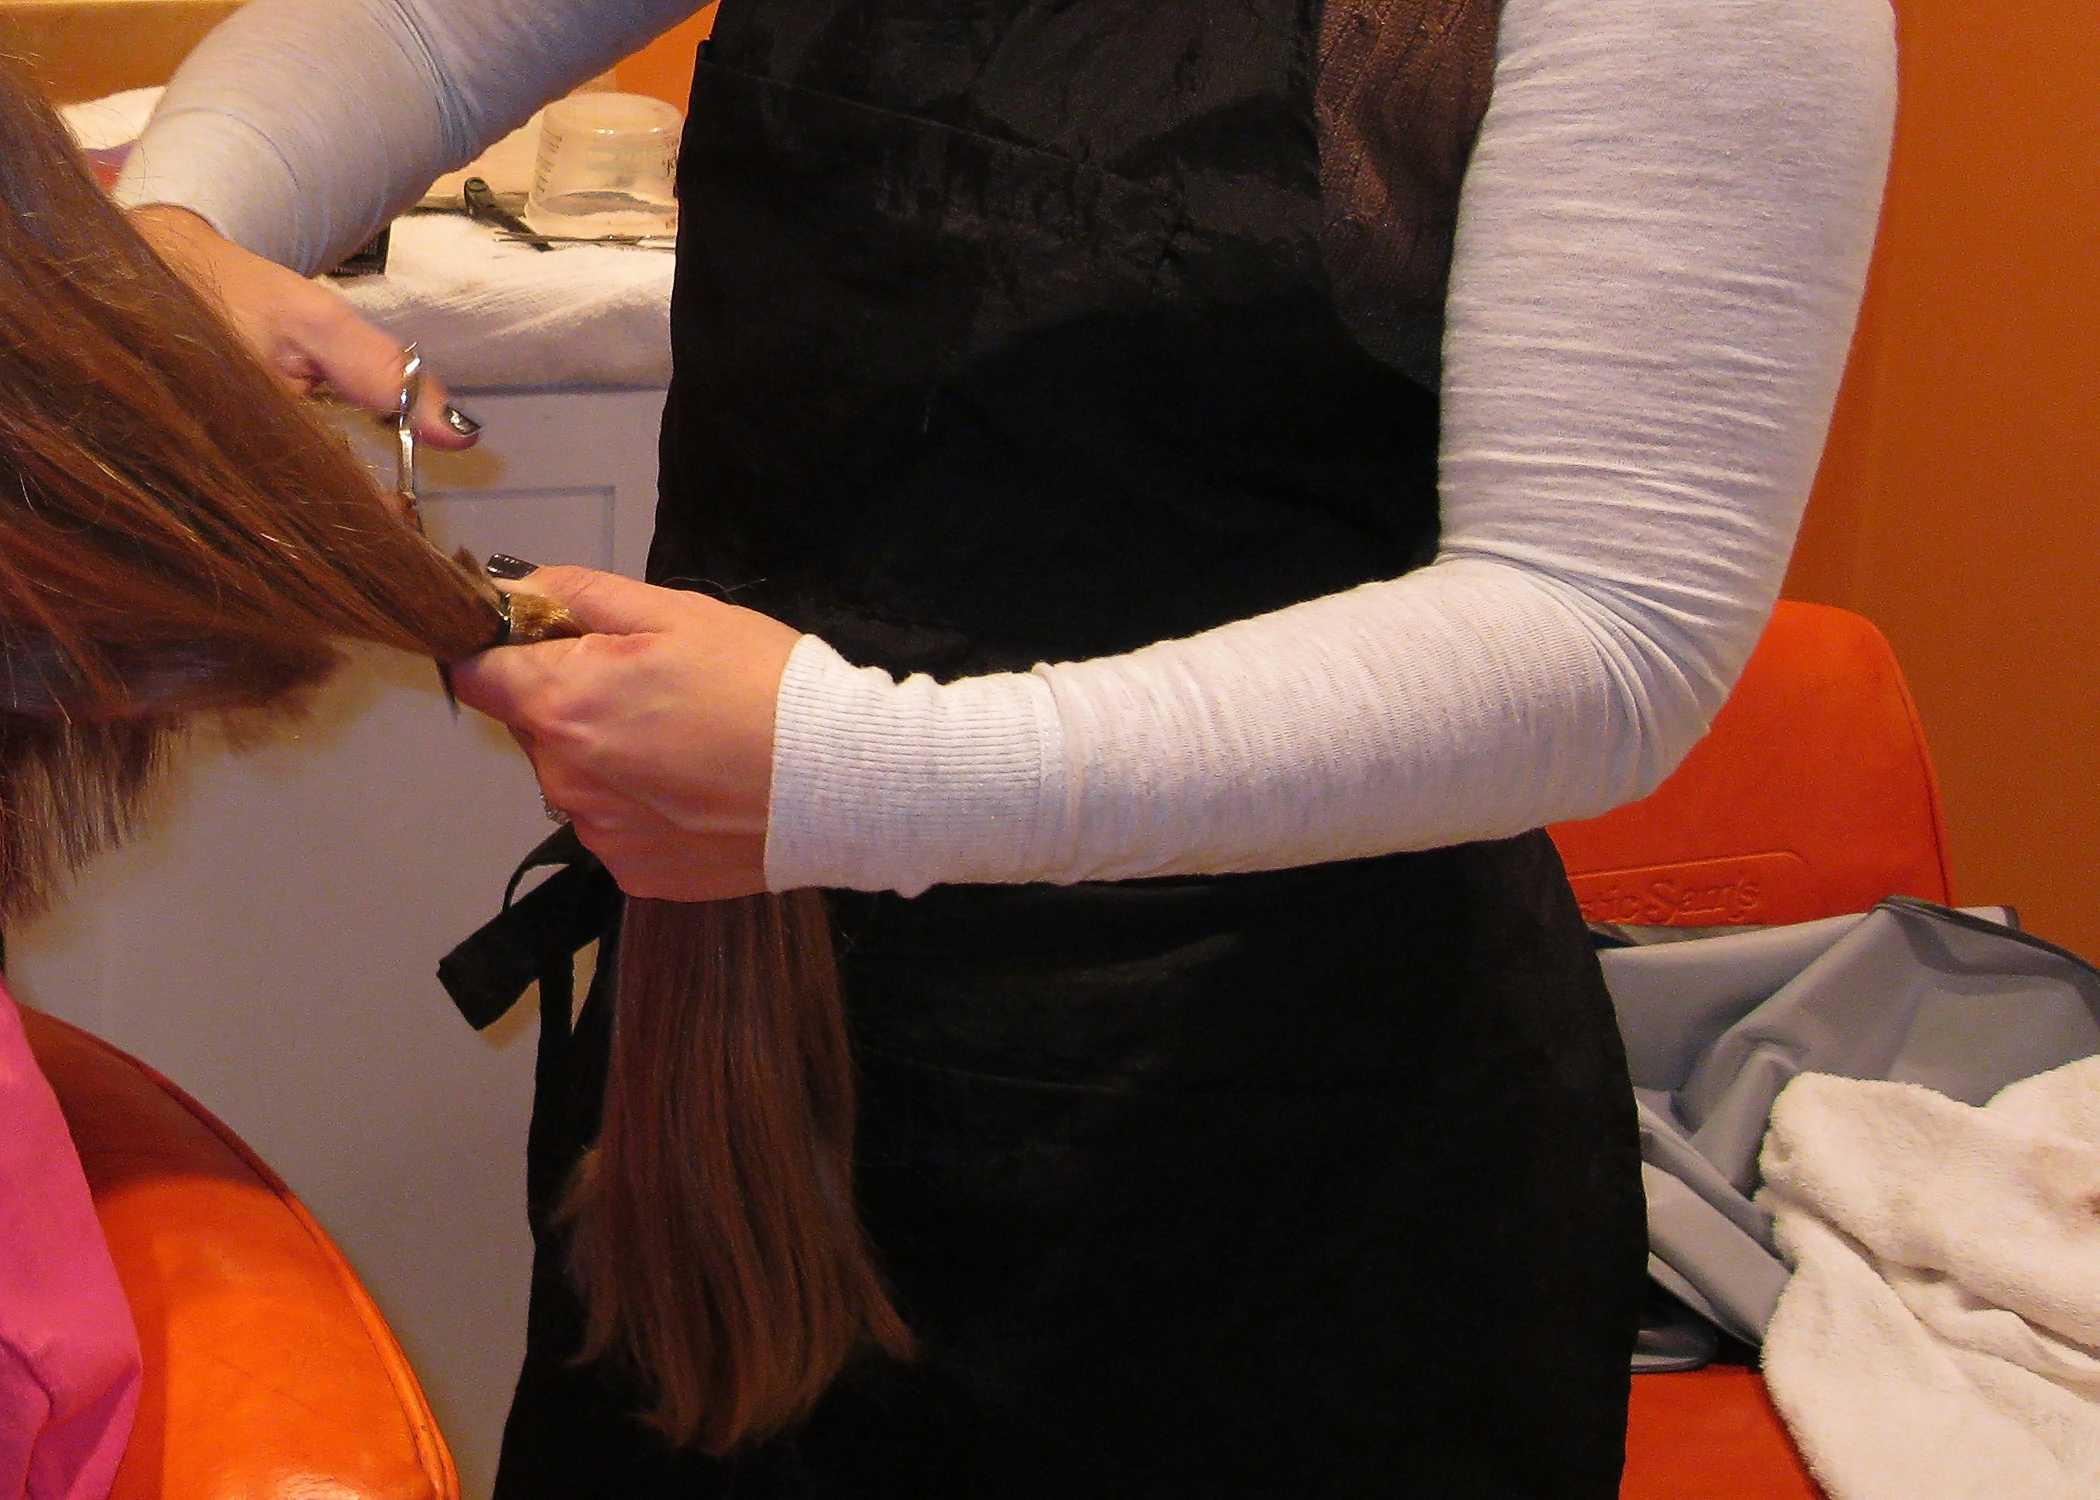 Hair donation through organizations like Locks of Love is one of many ways to serve your community (H. Baldacci).